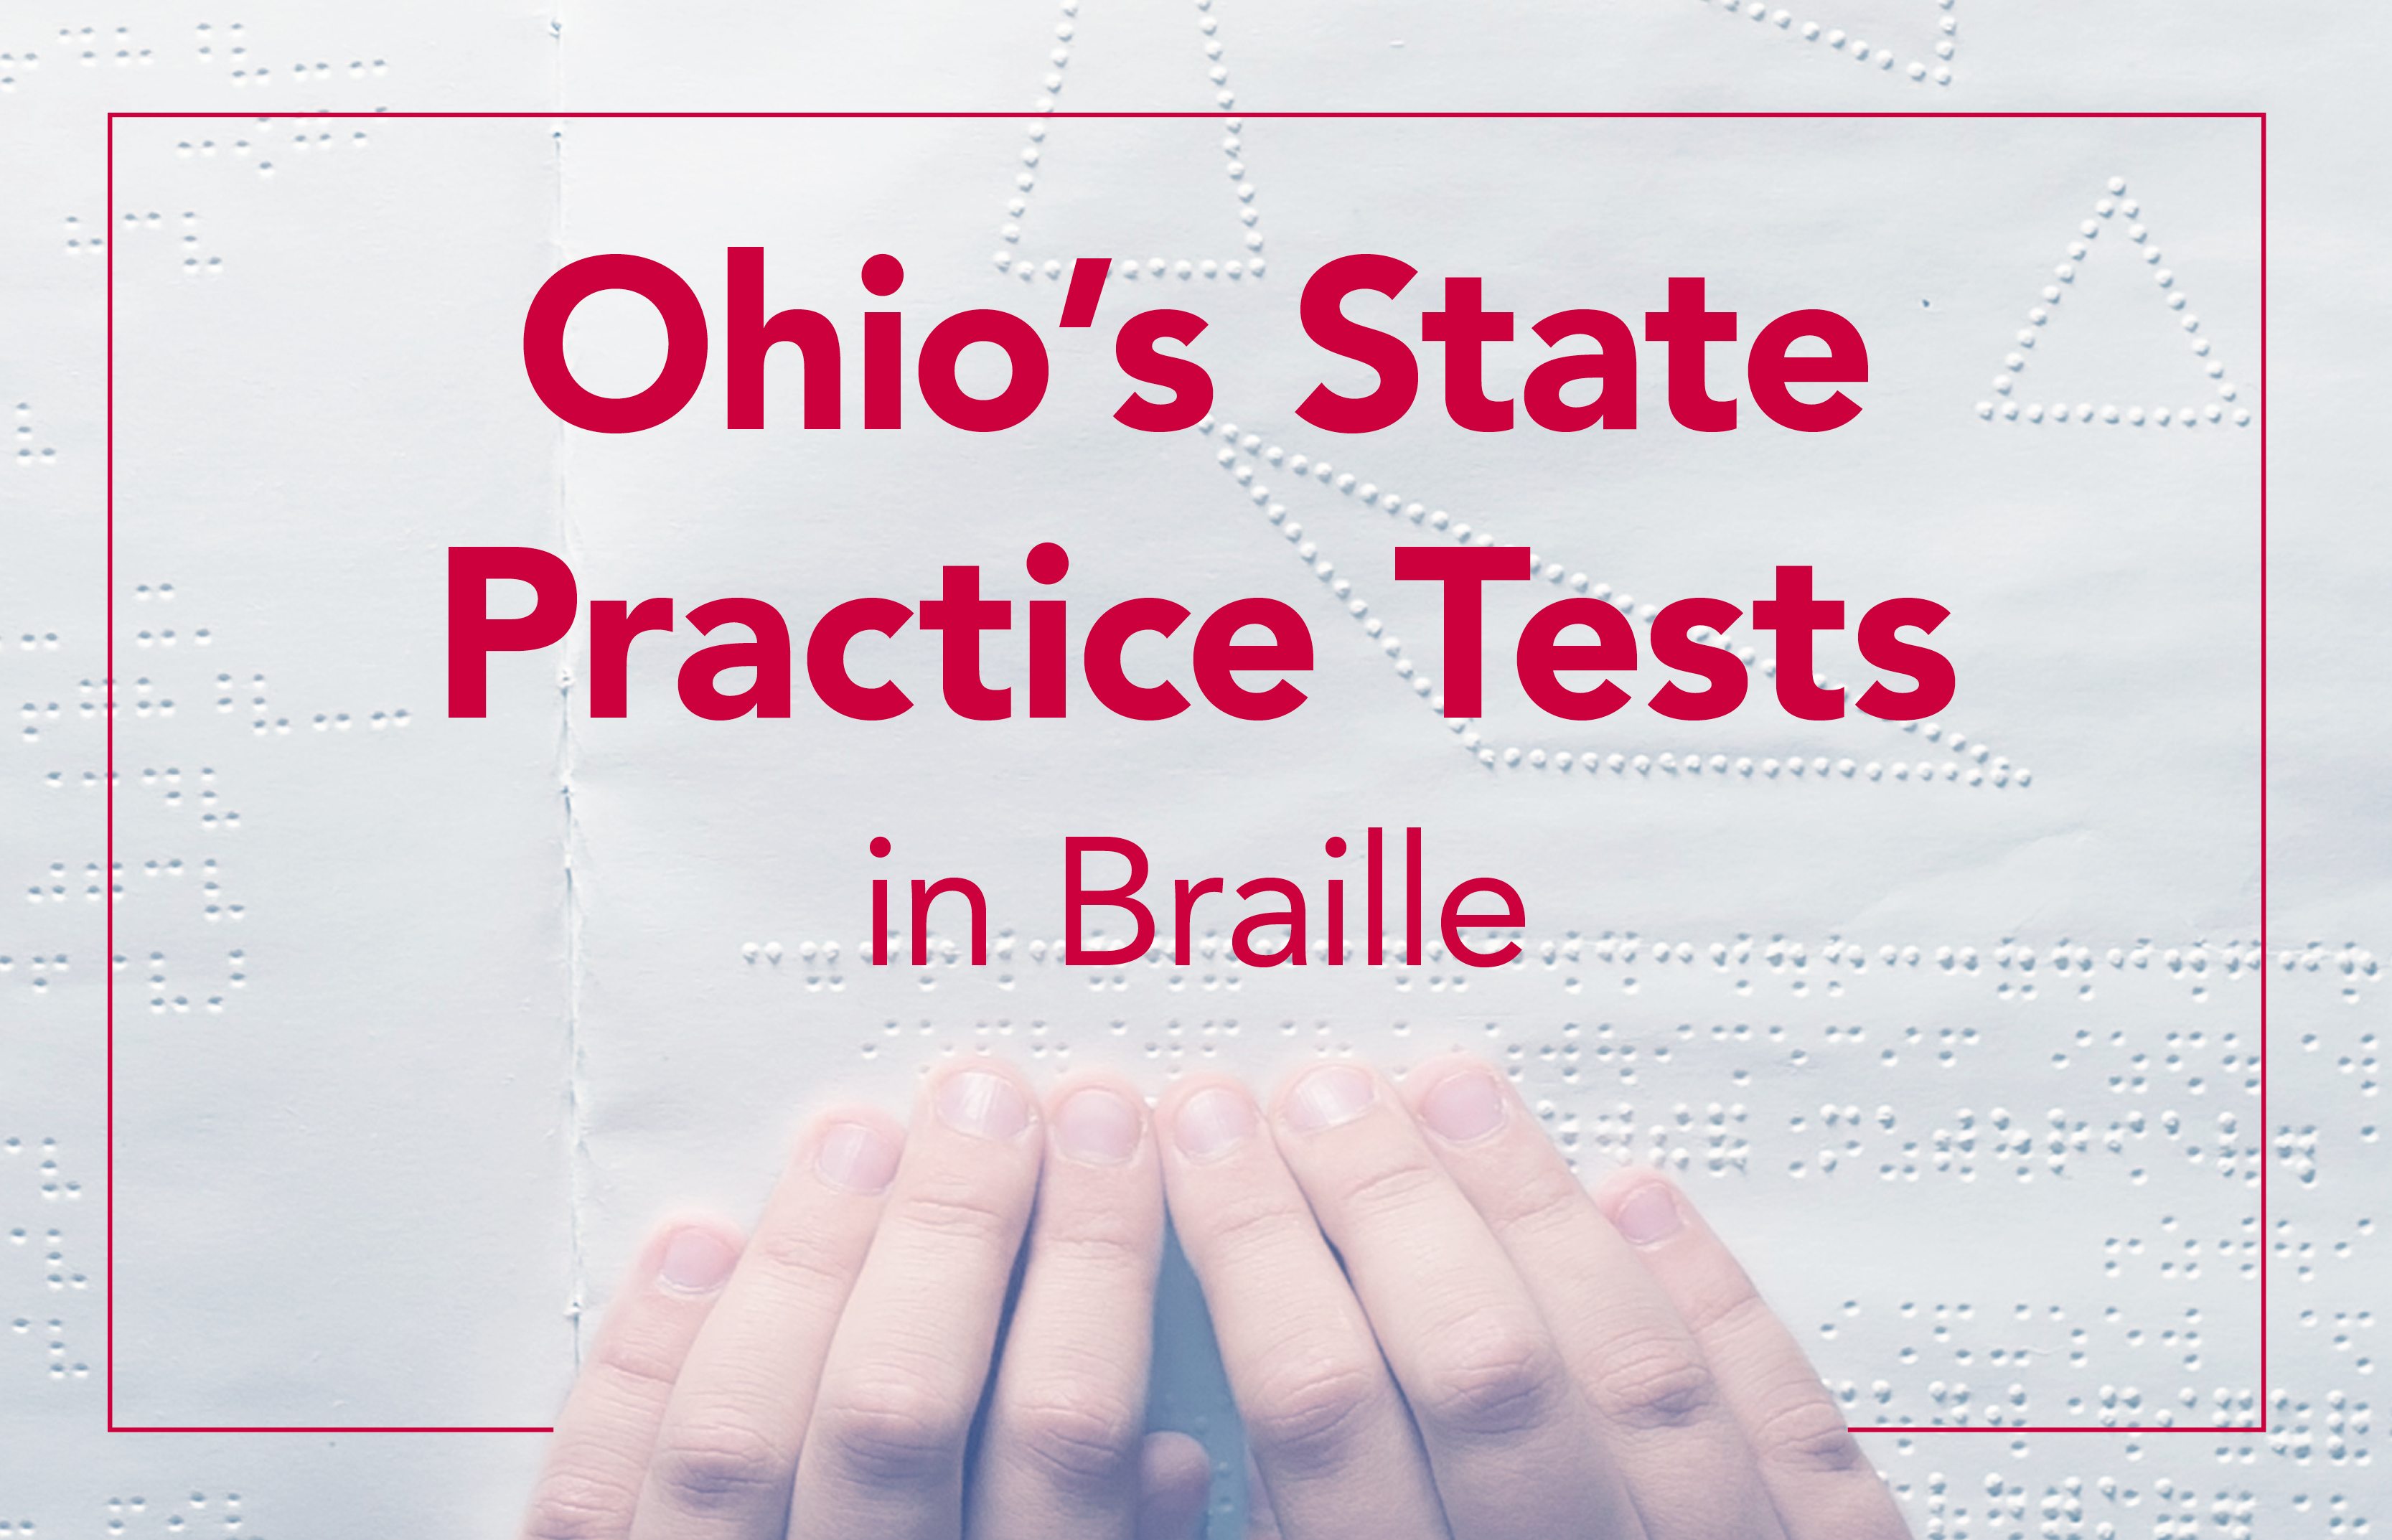 Ohio's State Practice Tests in Braille